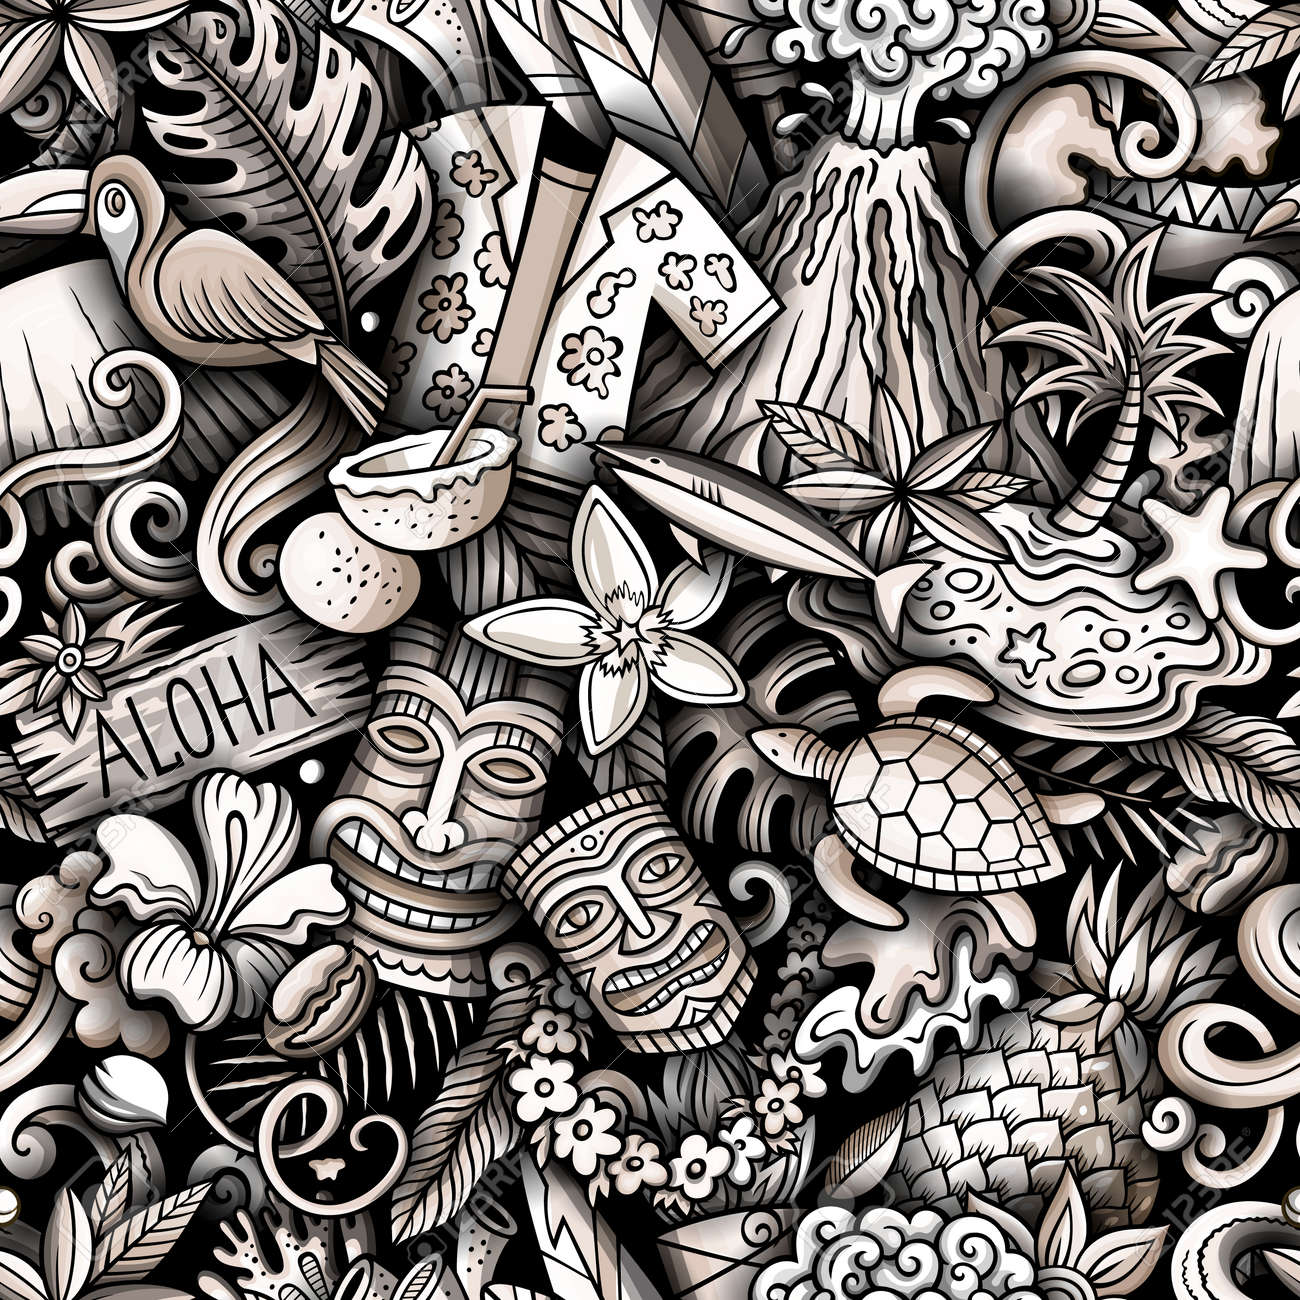 Cartoon doodles Hawaii seamless pattern. Backdrop with Hawaiian culture symbols and items. Monochrome detailed, with lots of objects background for print on fabric, textile, phone cases, wrapping paper. - 167836722